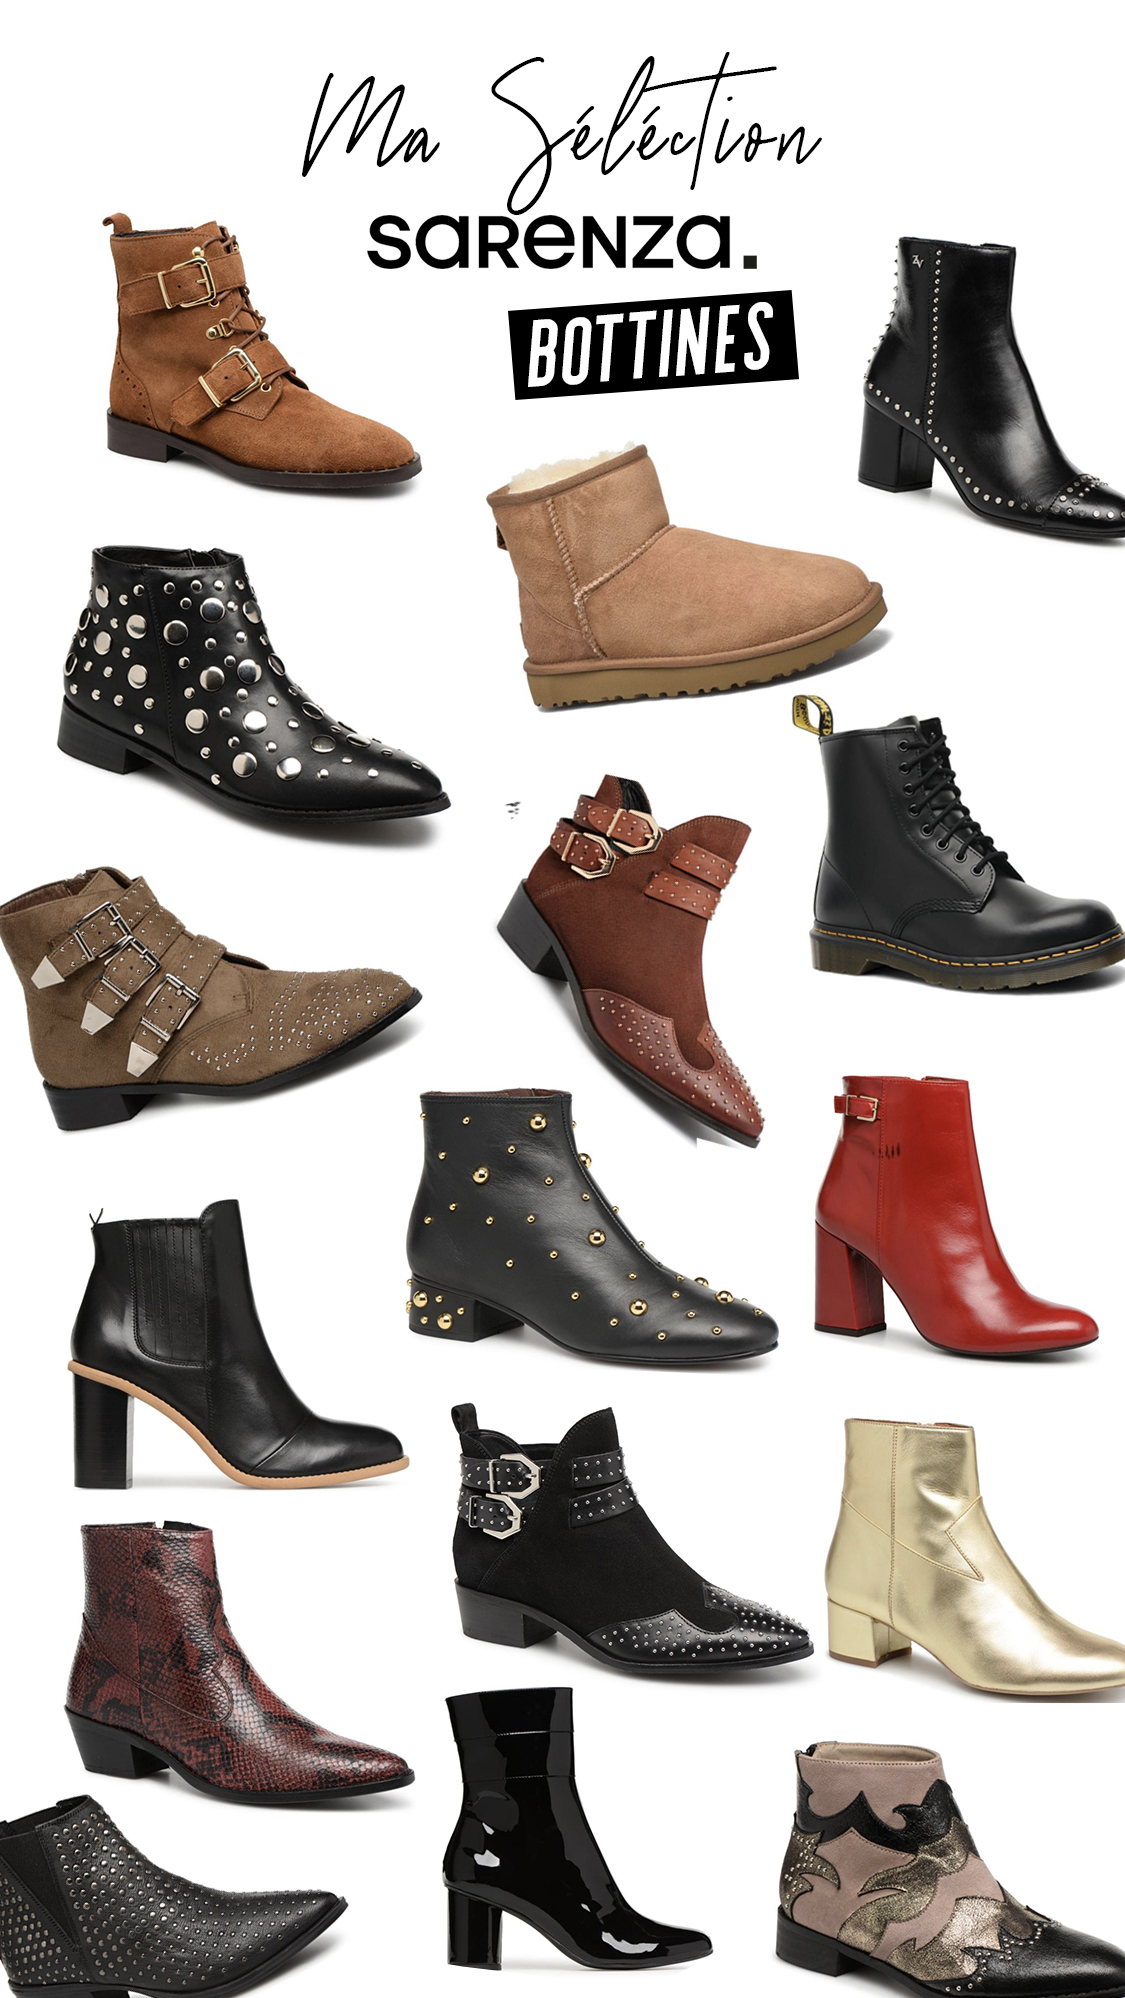 selection boots bottines sarenza meganvlt